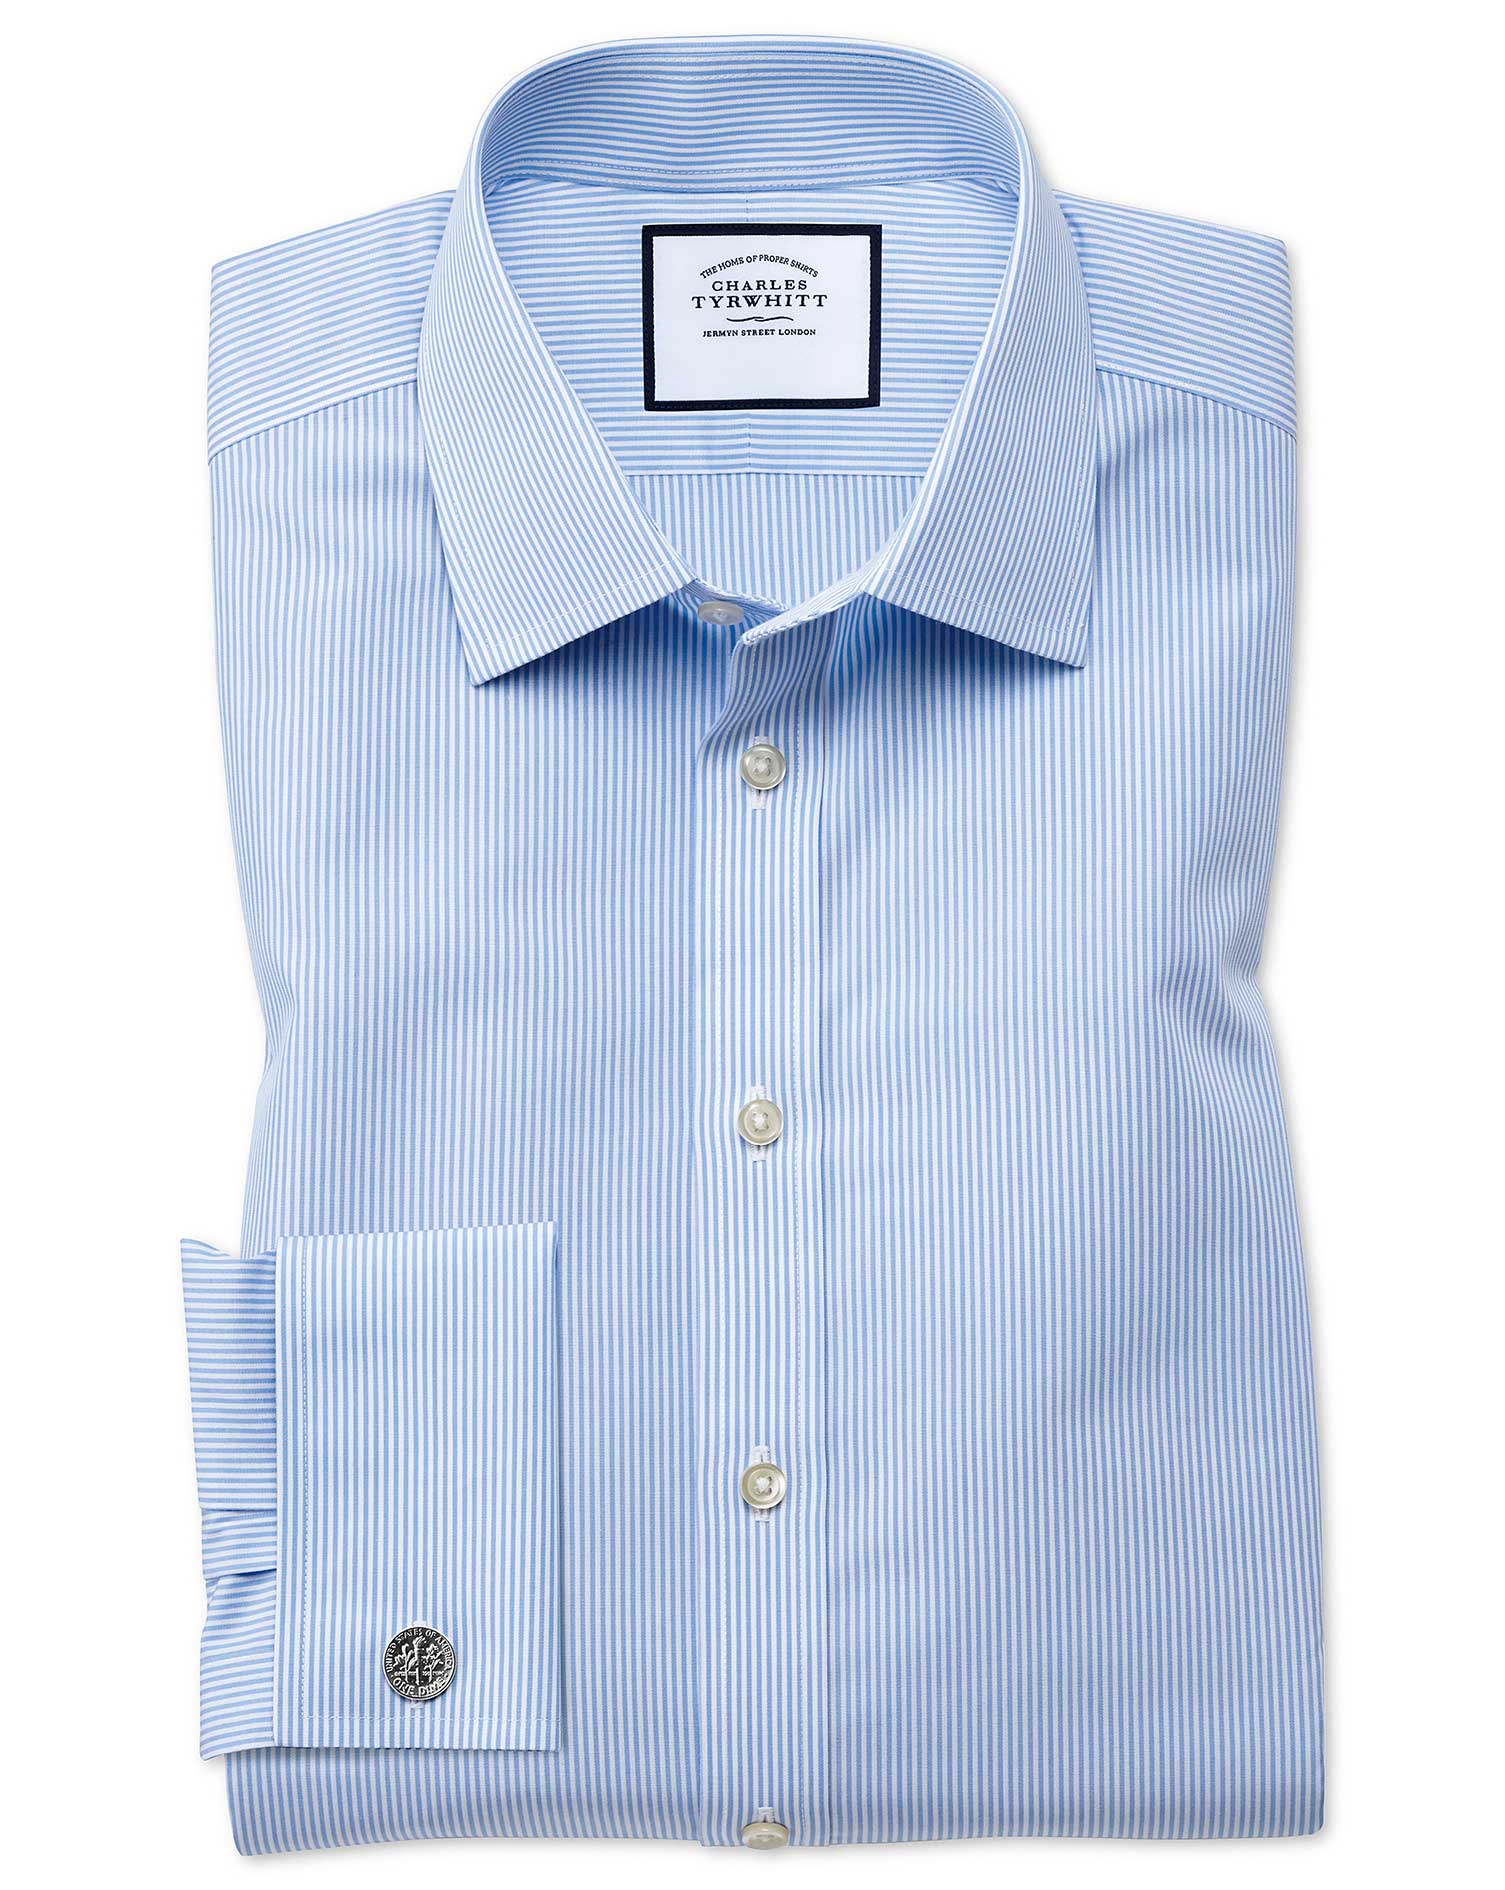 Extra Slim Fit Non-Iron Bengal Stripe Sky Blue Cotton Formal Shirt Single Cuff Size 15.5/32 by Charl